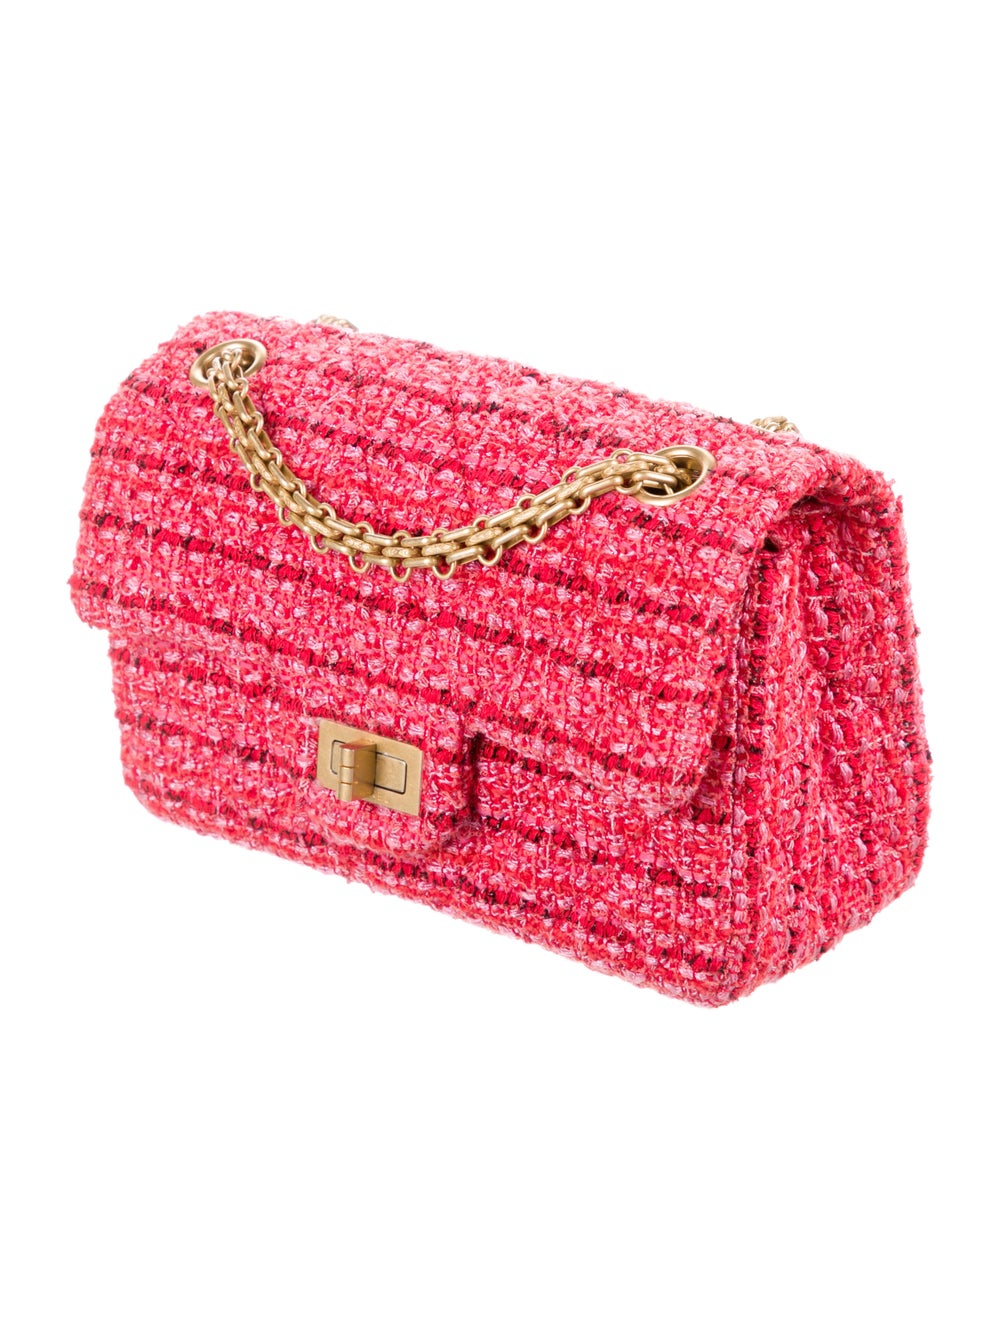 Chanel Tweed Reissue Mini Flap Bag Red - image 3